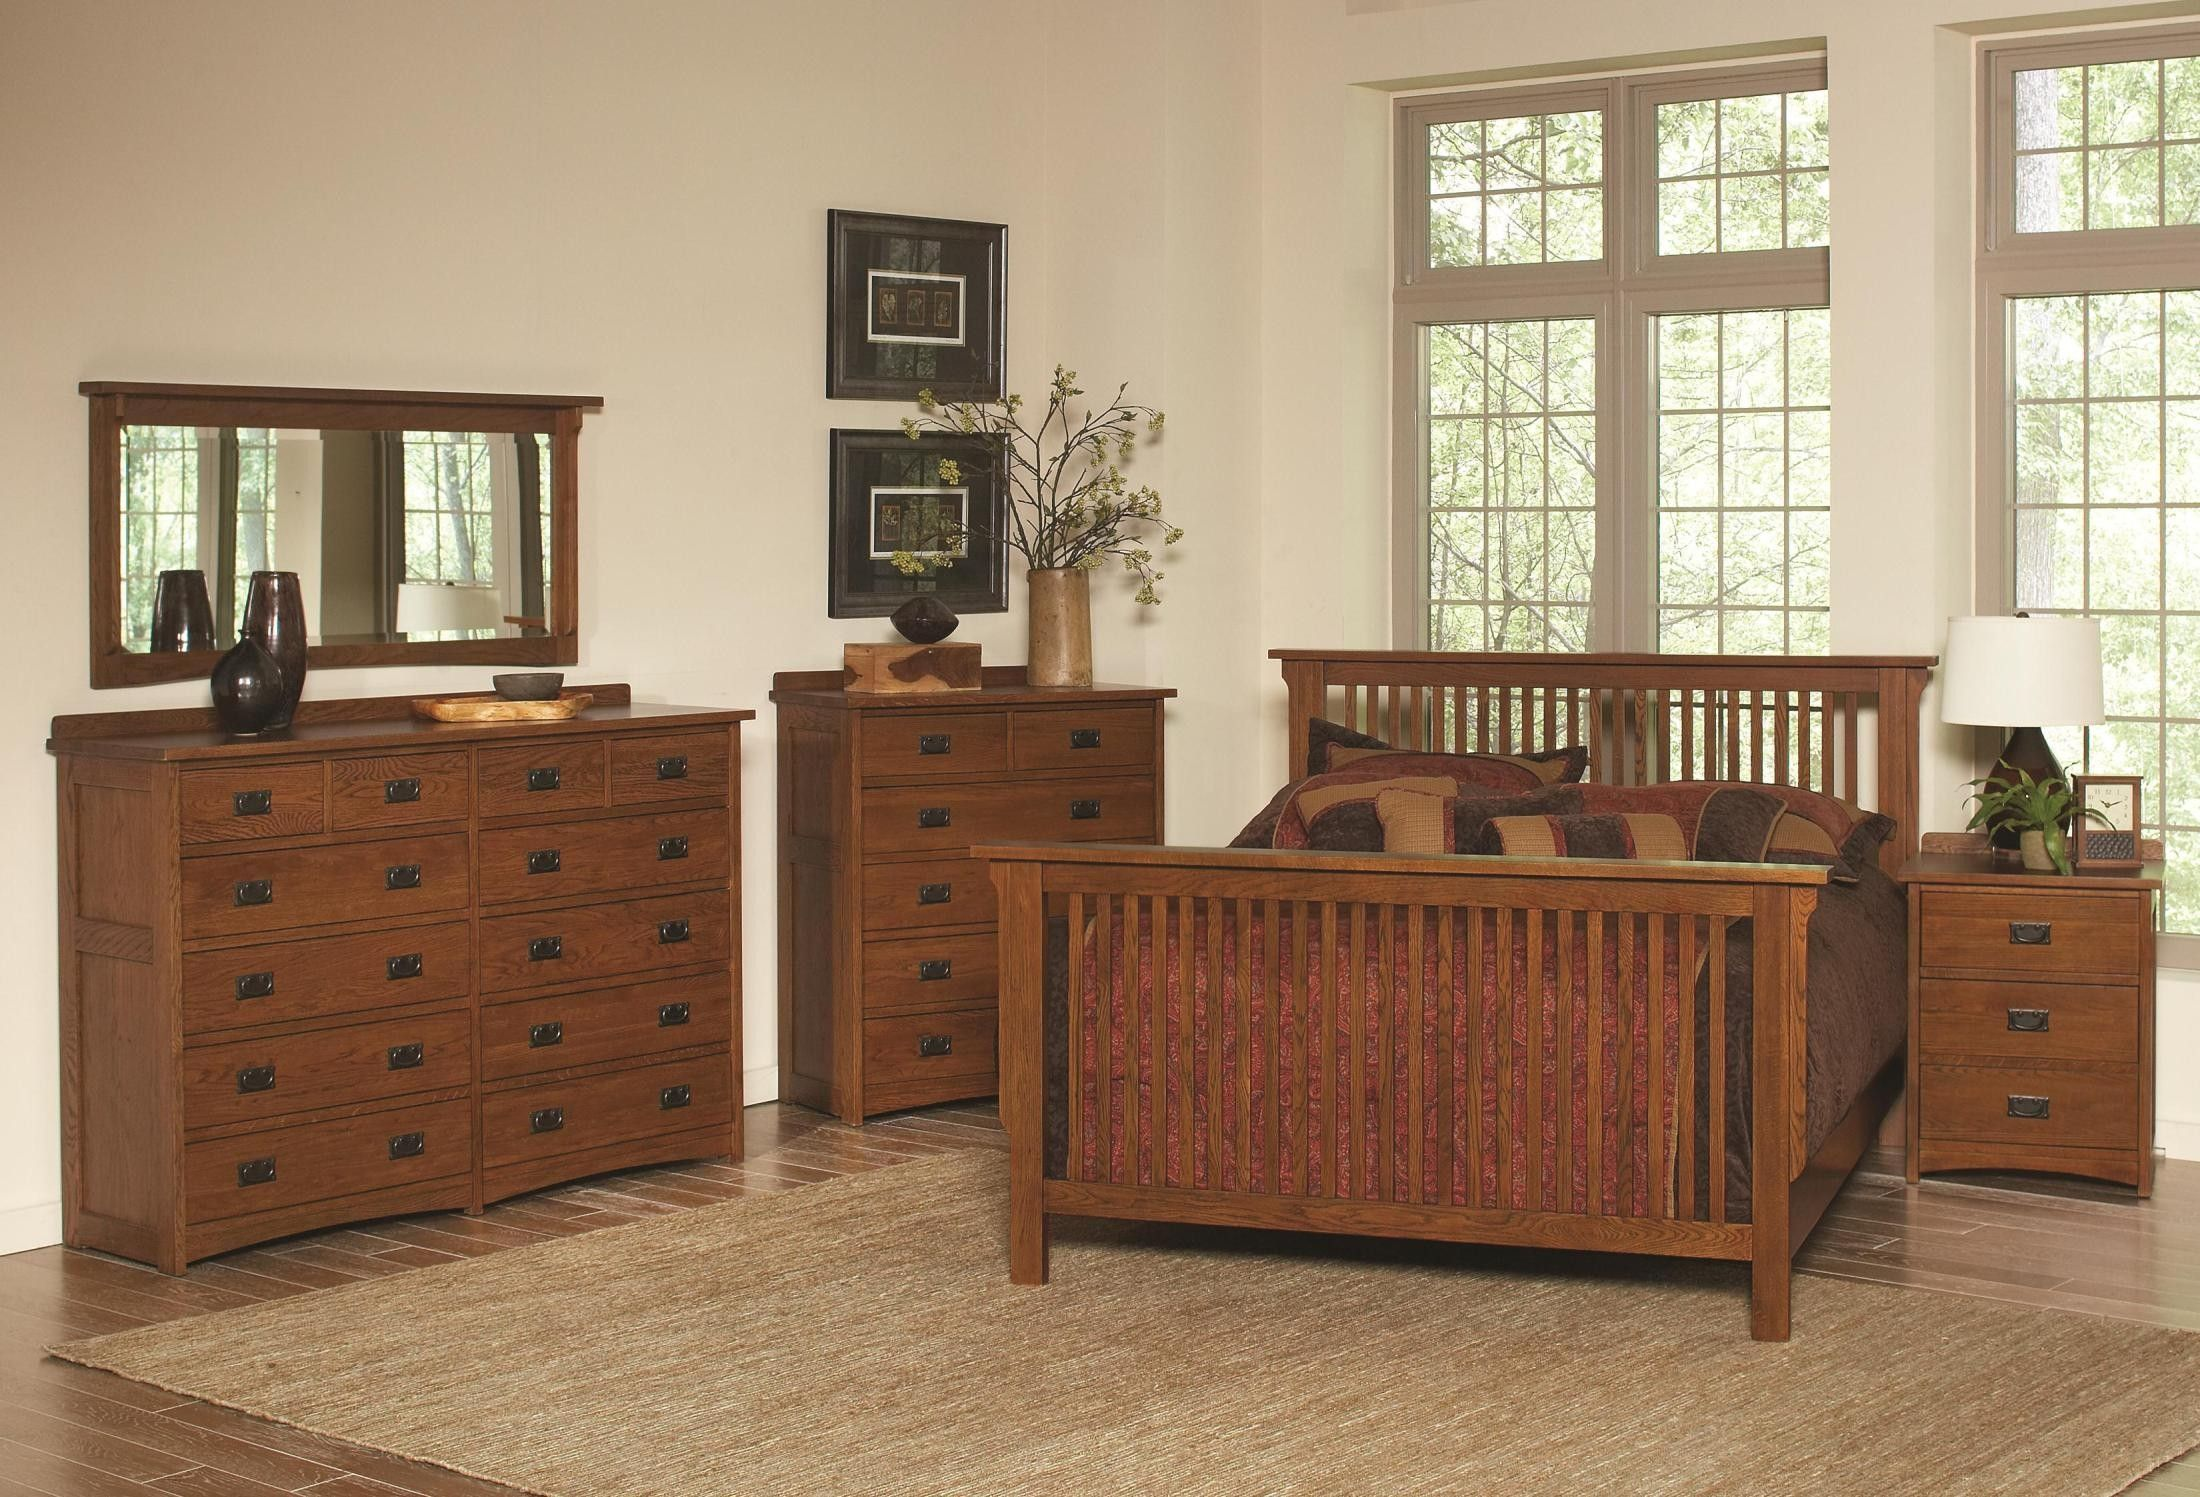 Bedroom sets coleman furniture - Mission Slat Bedroom Set From Coleman Furniture